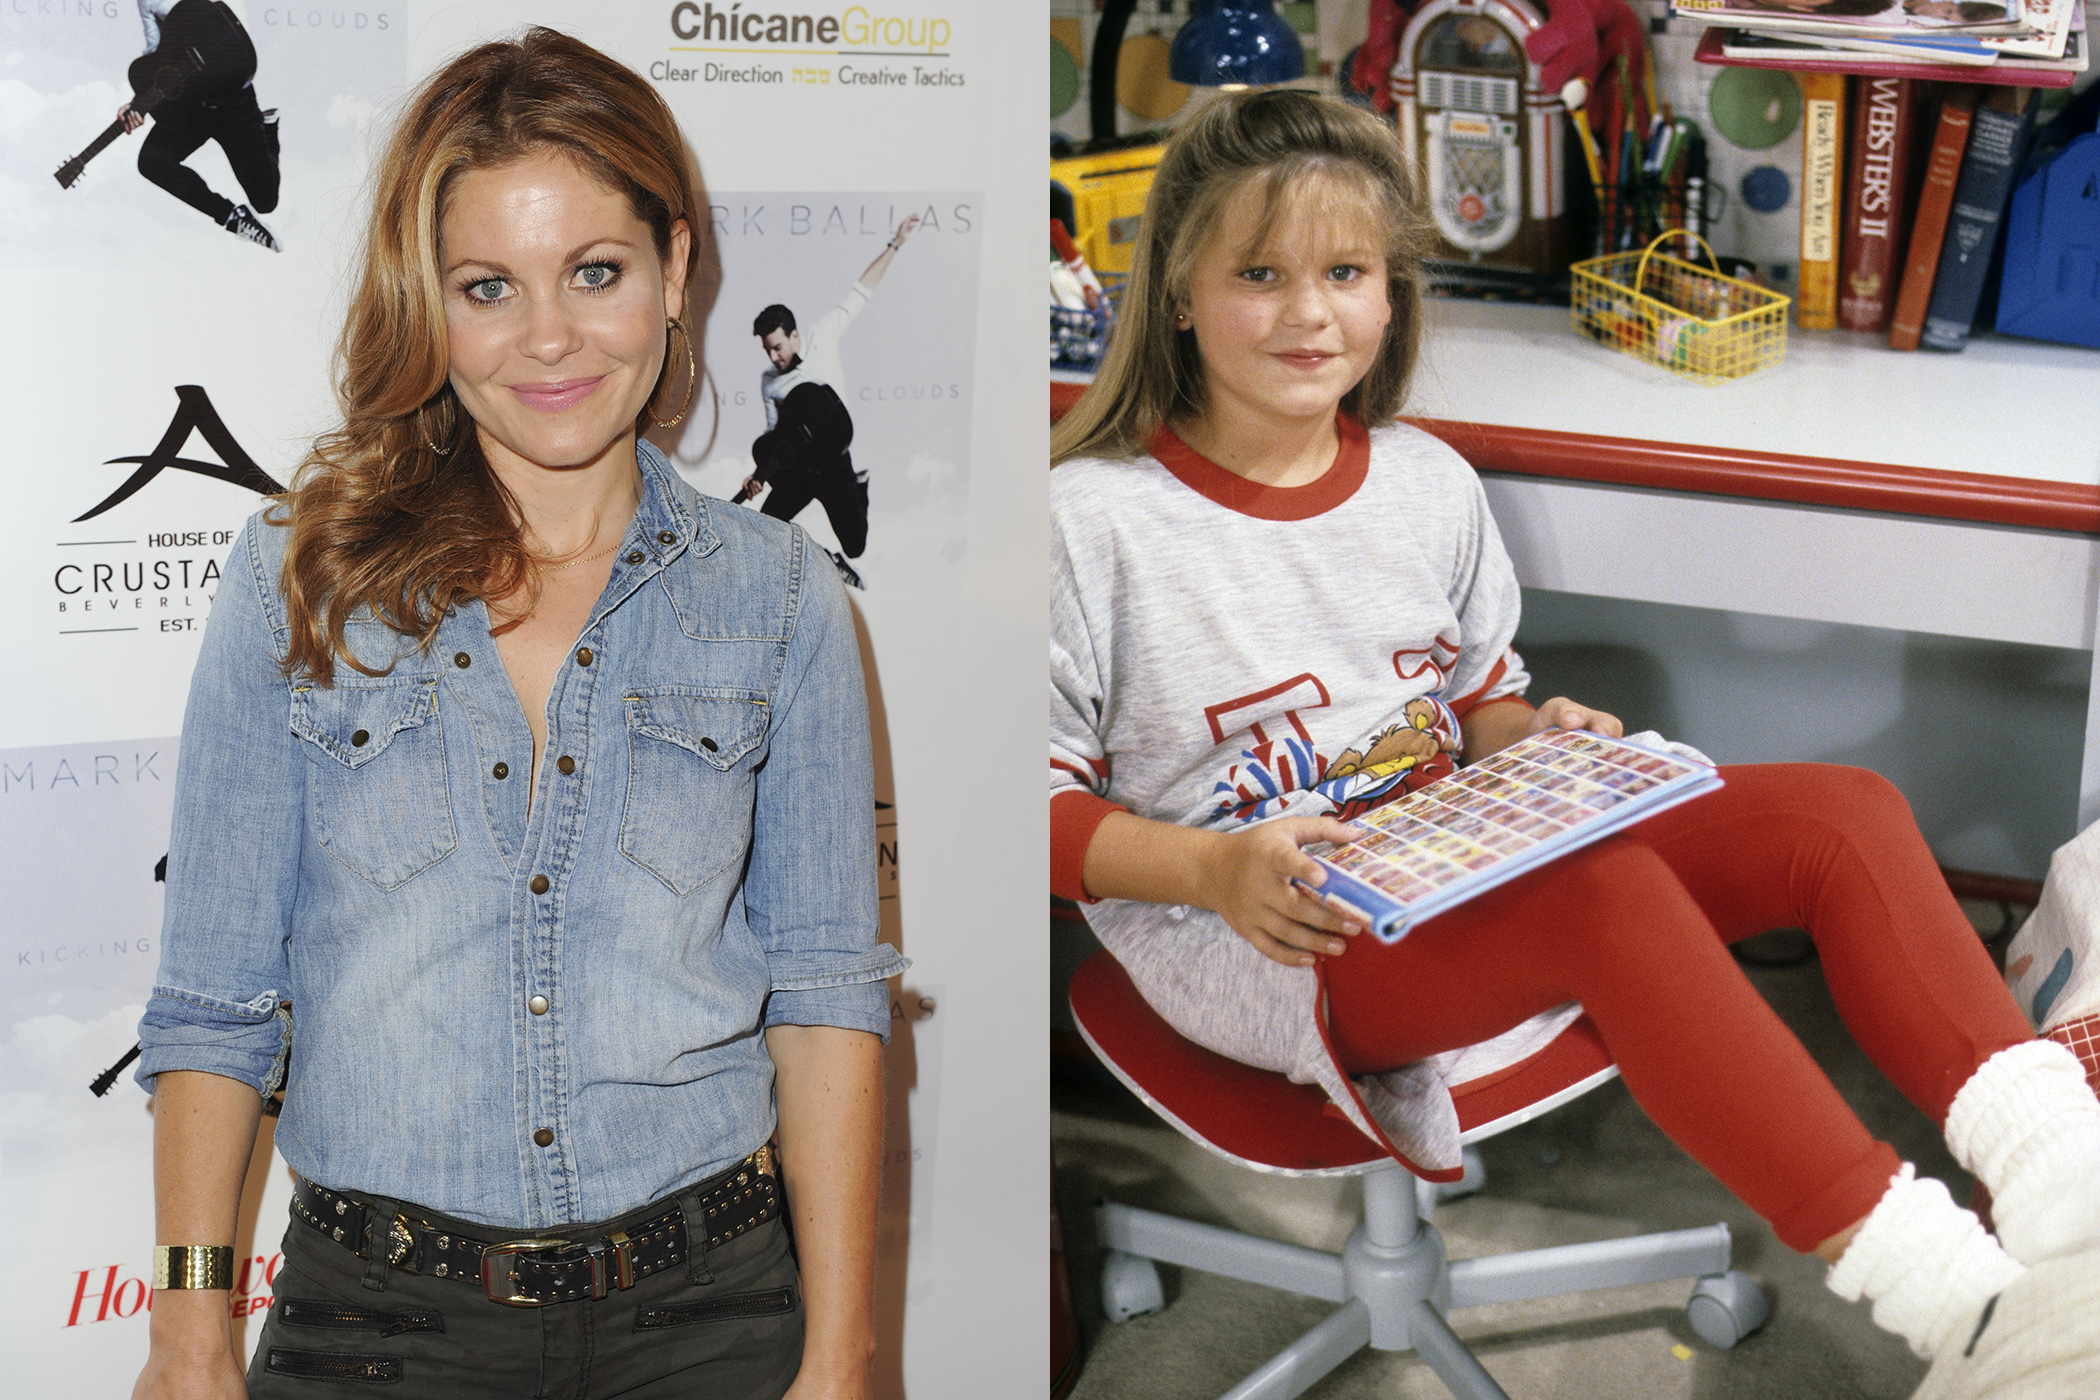 <strong>Candace Cameron.</strong>                                   Though she had a handful of roles after Full House ended its run in 1995, Cameron's biggest TV appearance after TGIF was in the 2014 season of Dancing With the Stars, where she placed third. A resolute religious conservative, she has also penned two books, 2011's Reshaping It All: Motivation for Physical and Spiritual Fitness and 2014's Balancing It All: My Story of Juggling Priorities and Purpose.